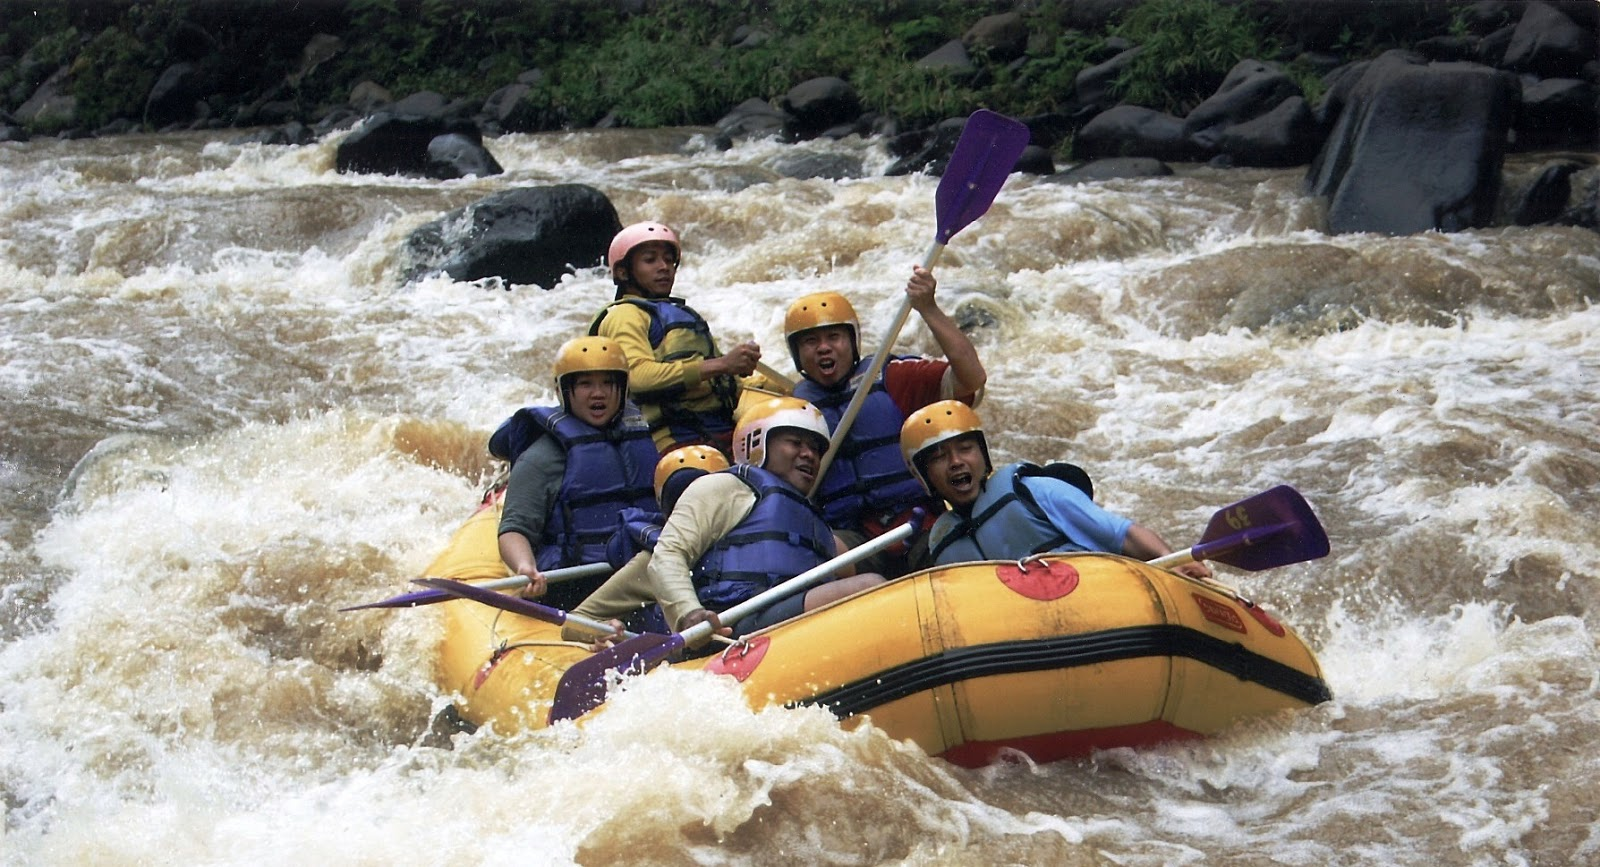 Rafting adventure dRafting adventure di sungai Pekaleni sungai Pekalen